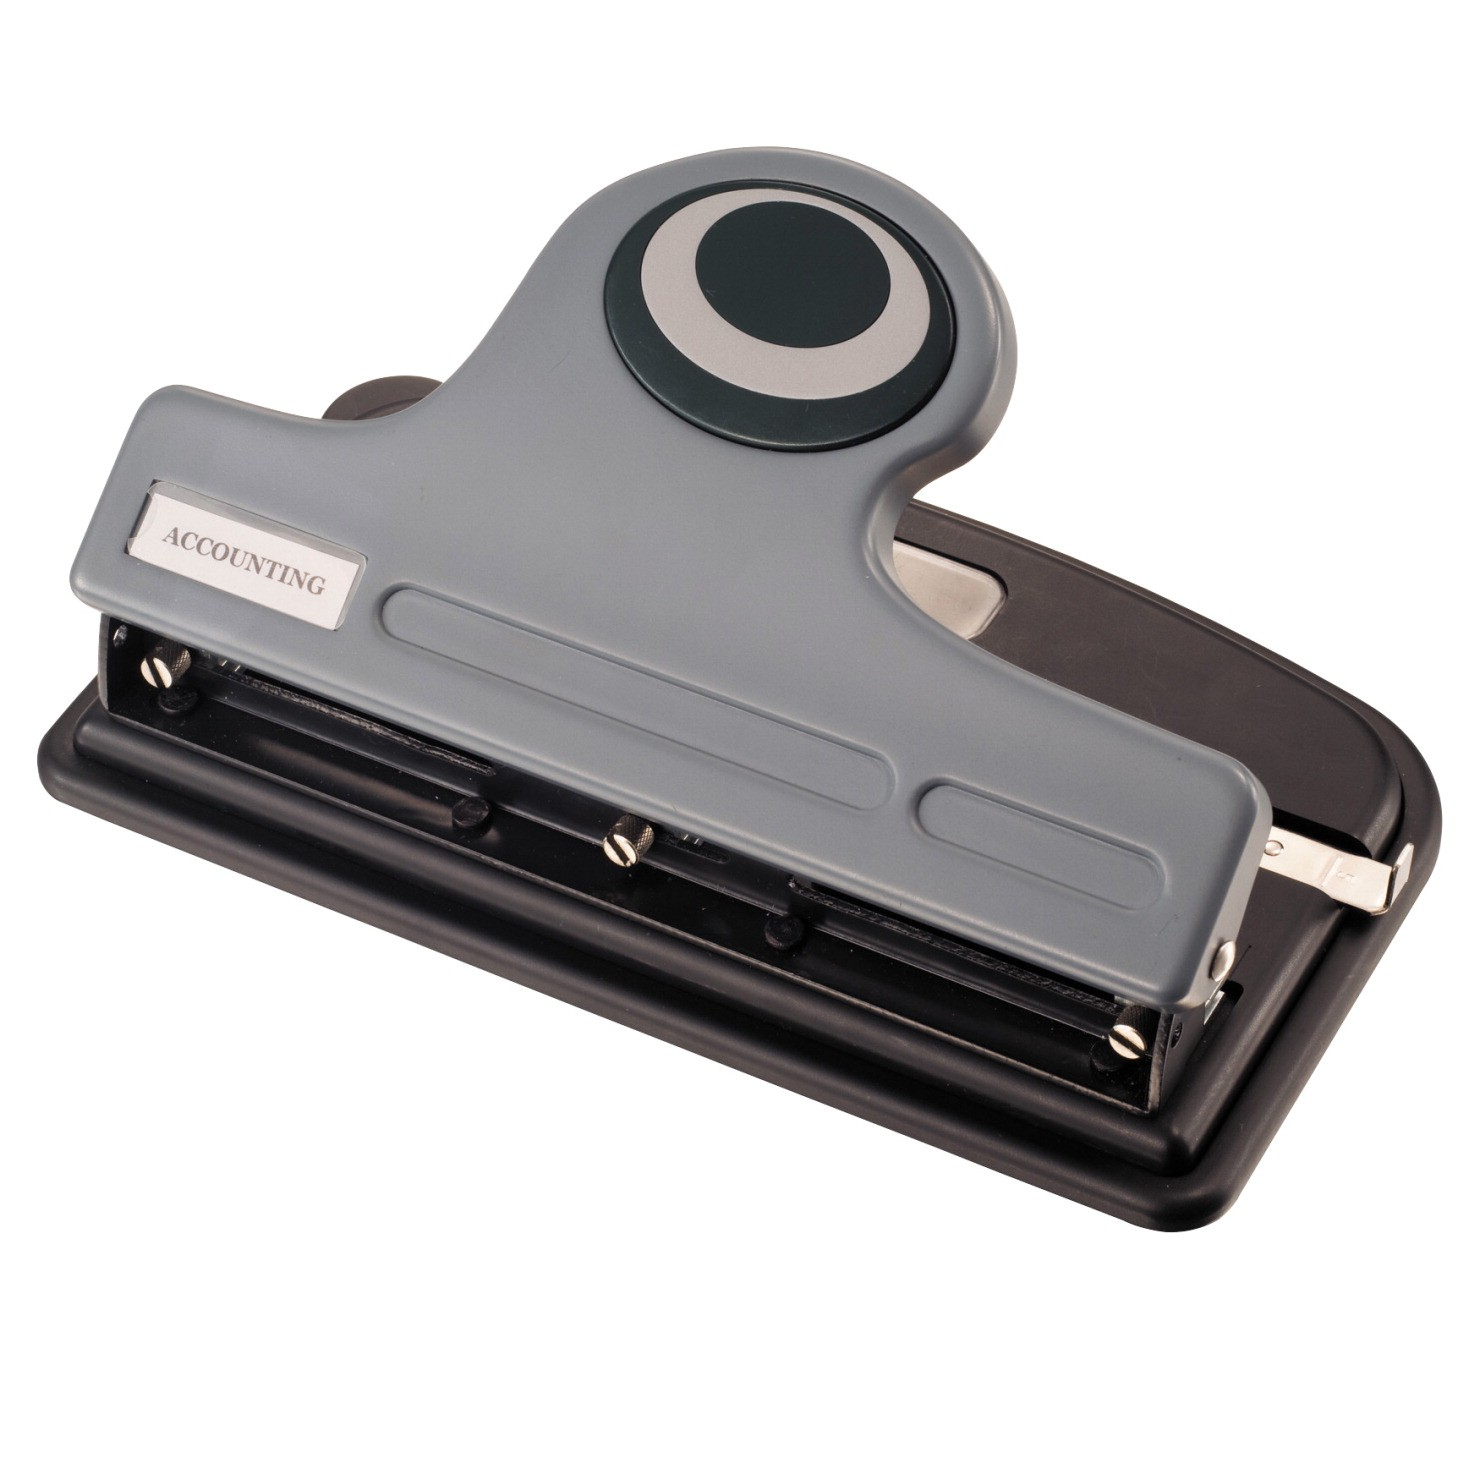 2 or 3-Hole Punch, Heavy Duty Antimicrobial, 30 Sheets, Gray and Black